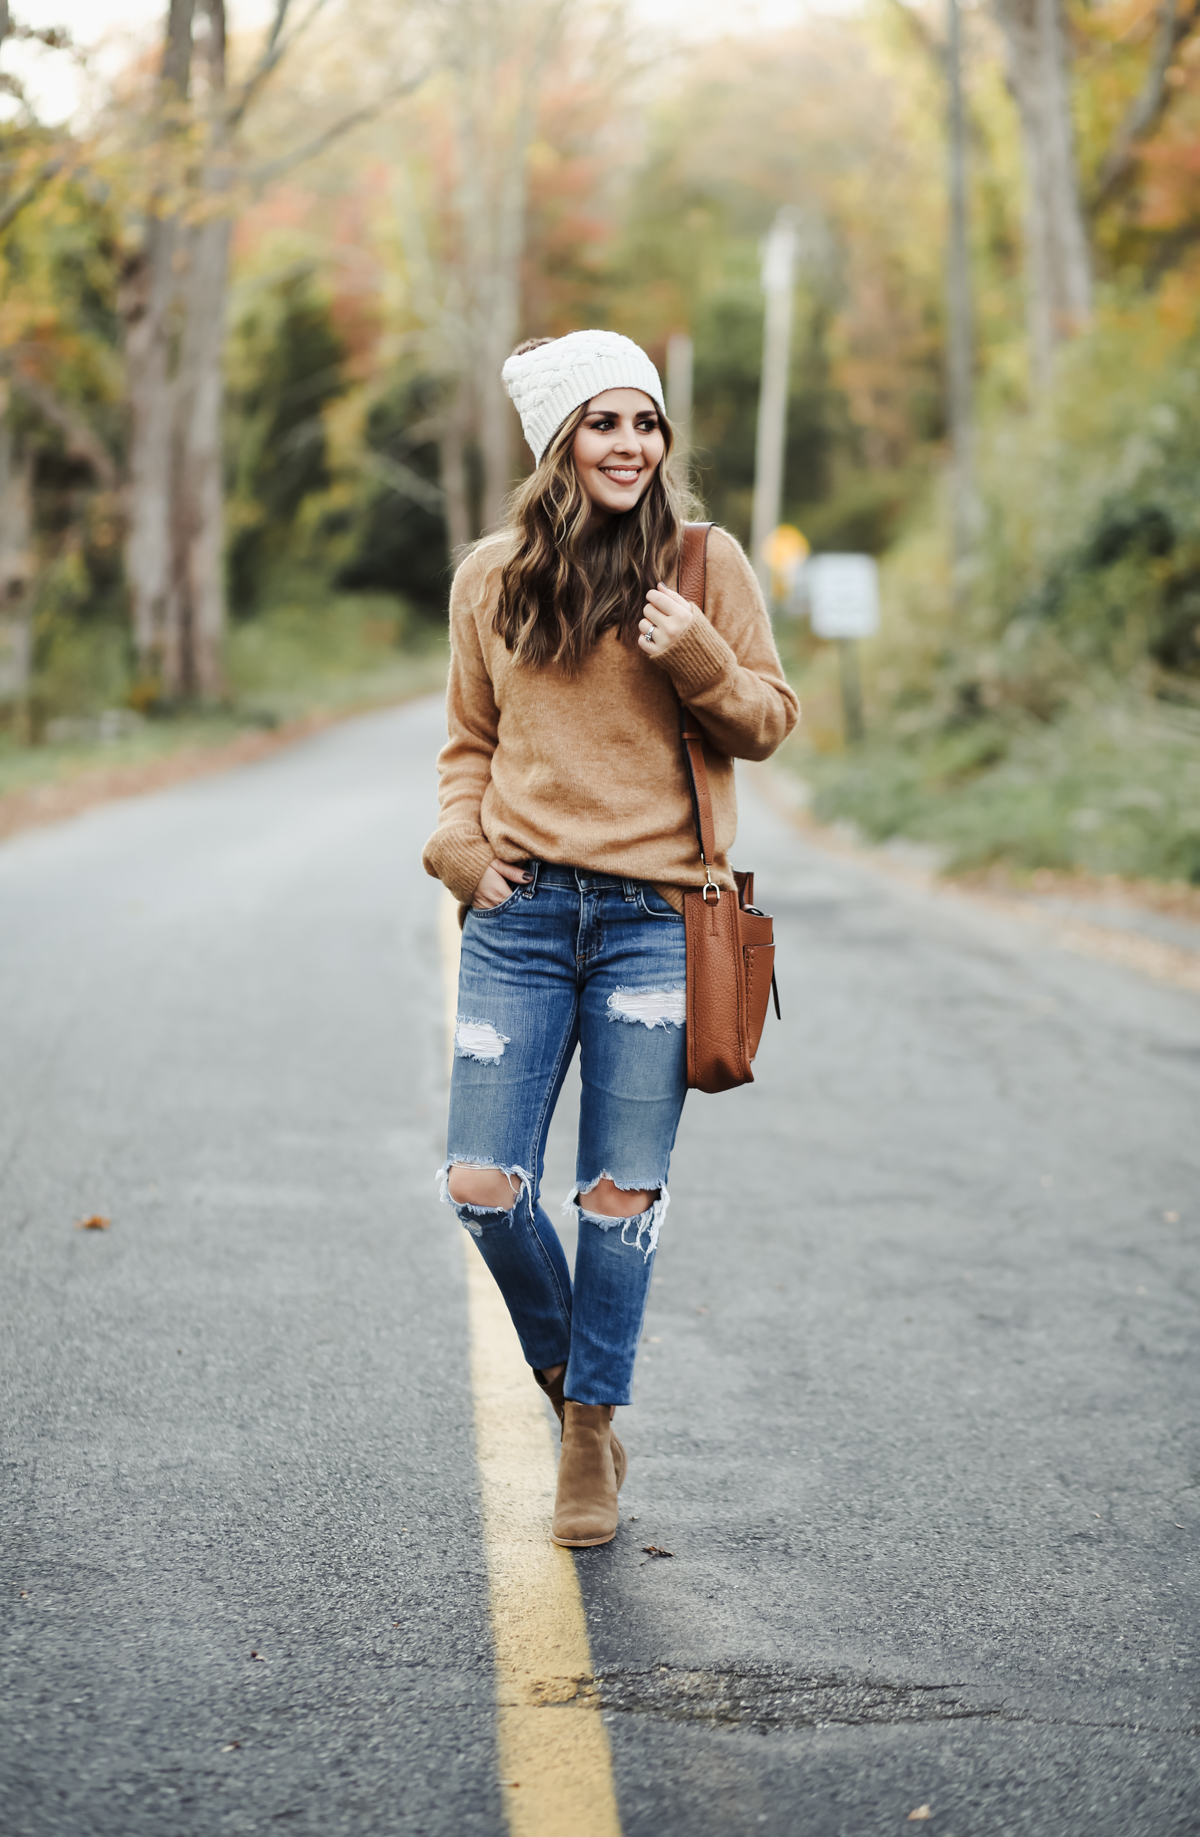 oversized camel colored sweater with jeans and booties,3